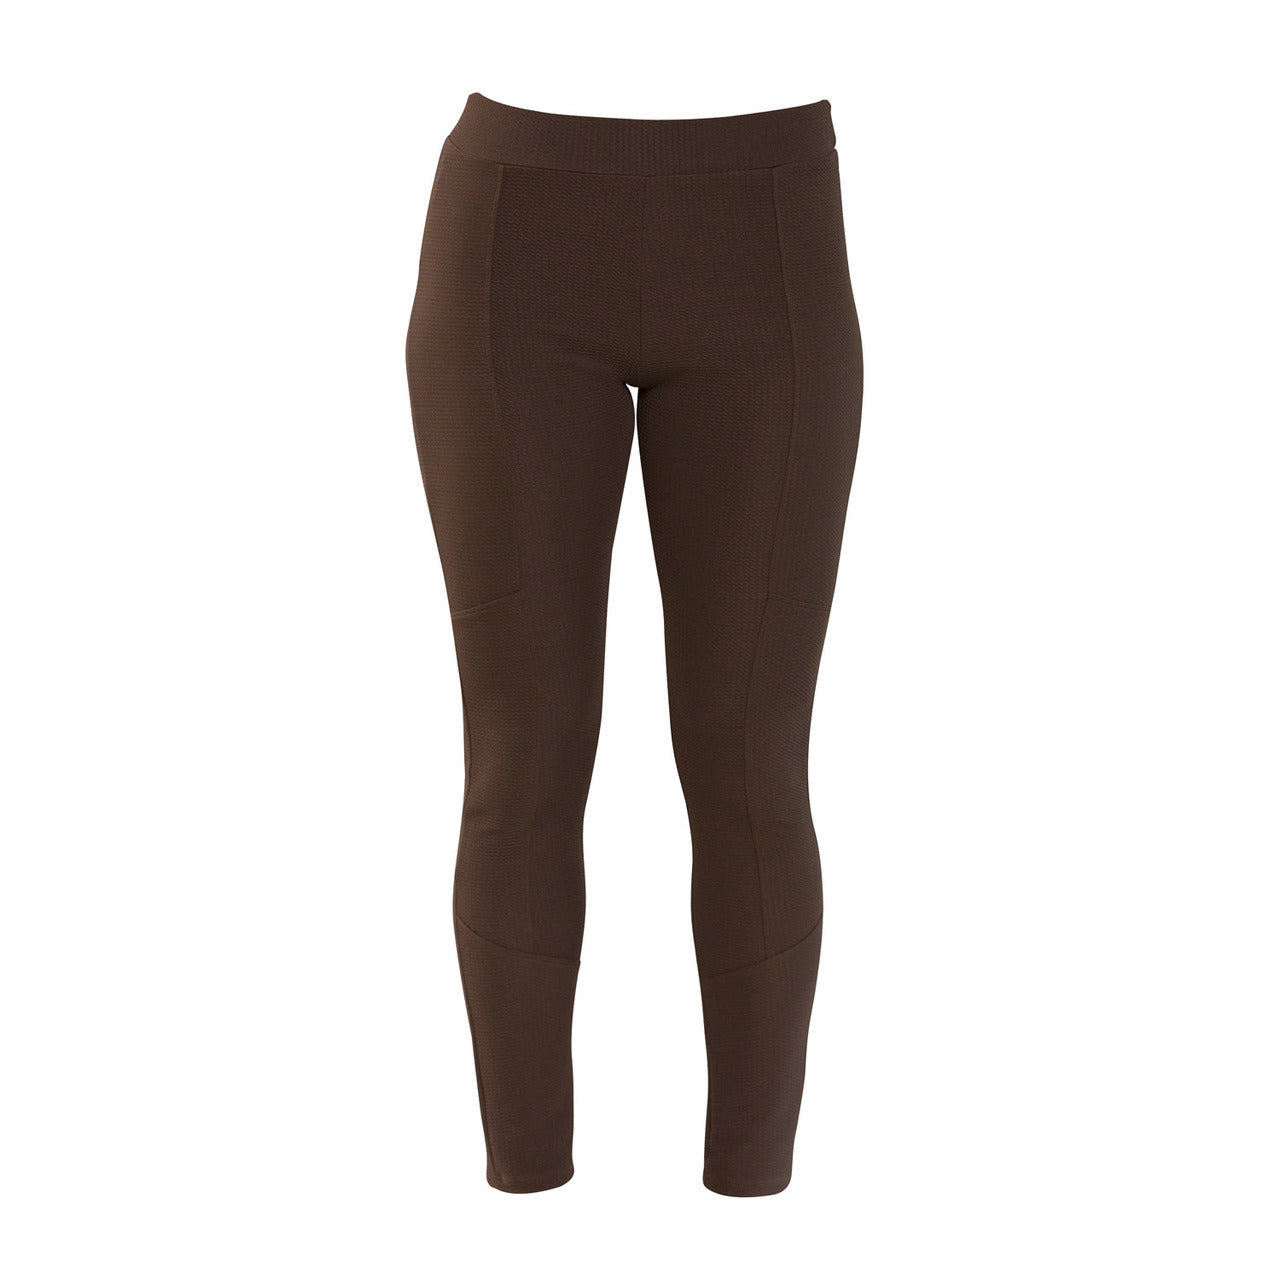 Mountain Mamas Chocolate Brown Bubble Leggings, Assorted Sizes - Bendixen's Giftware